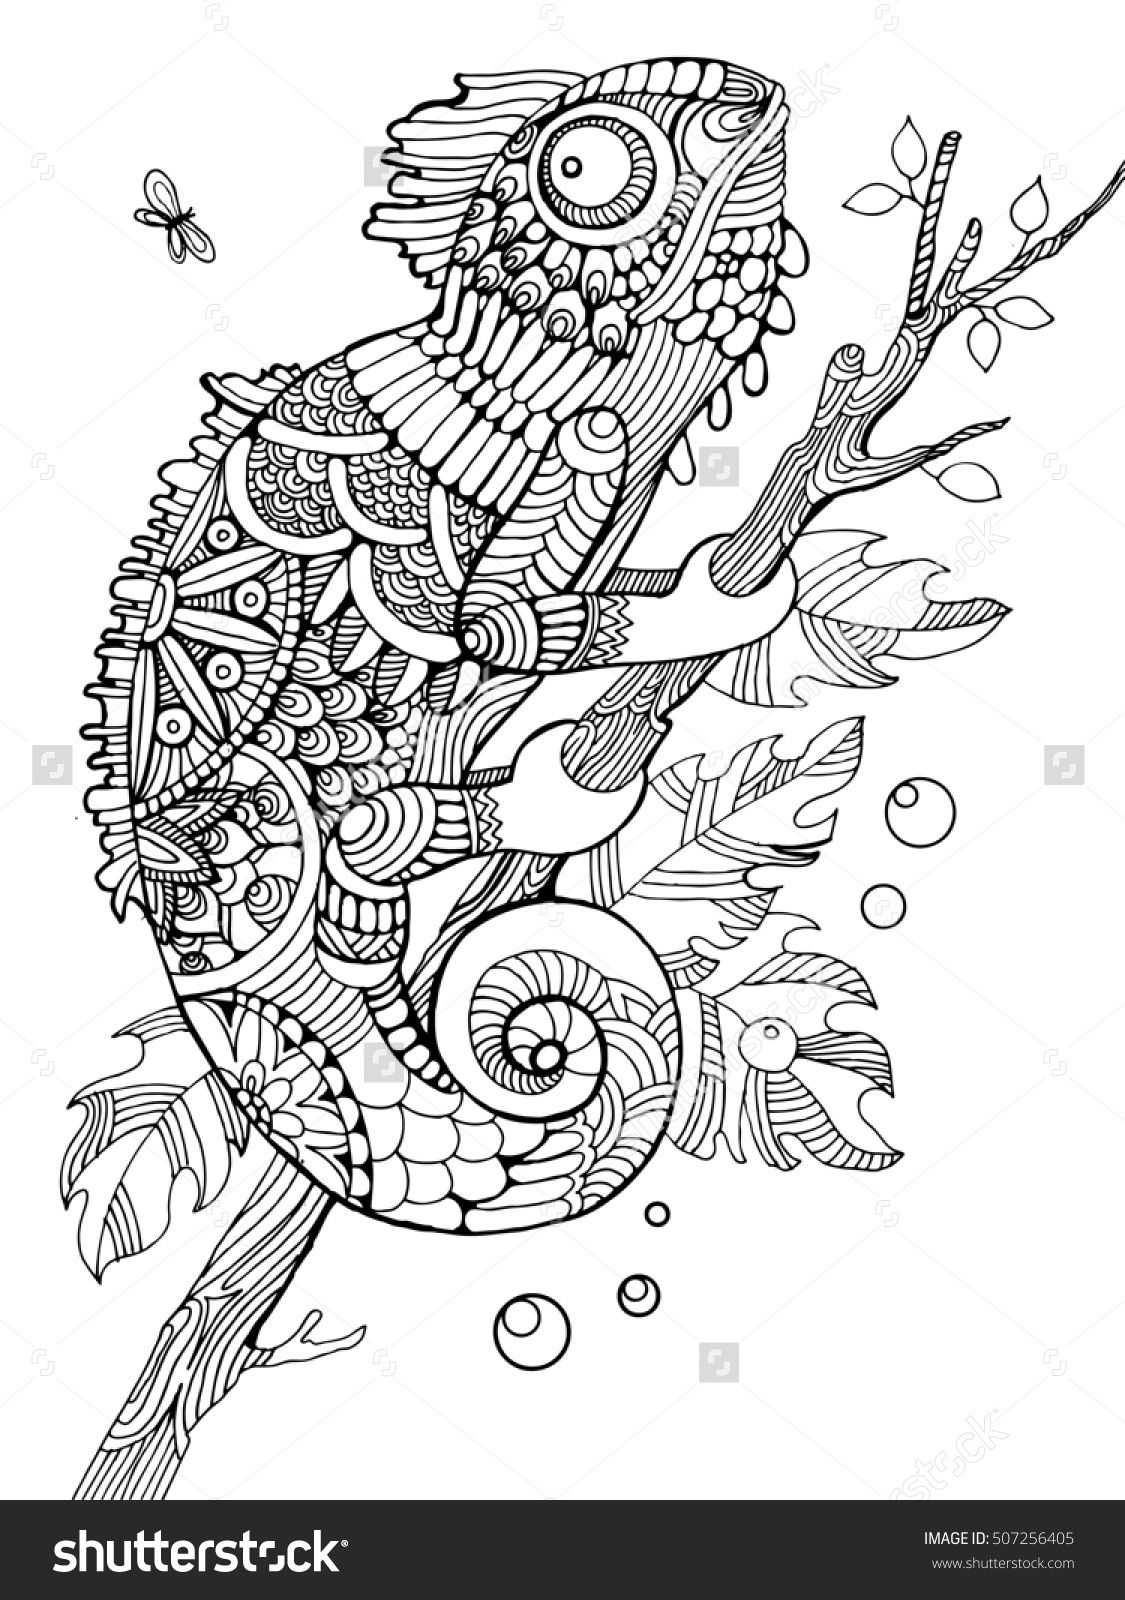 Chameleon coloring page for adults zentangle style | Coloring ...